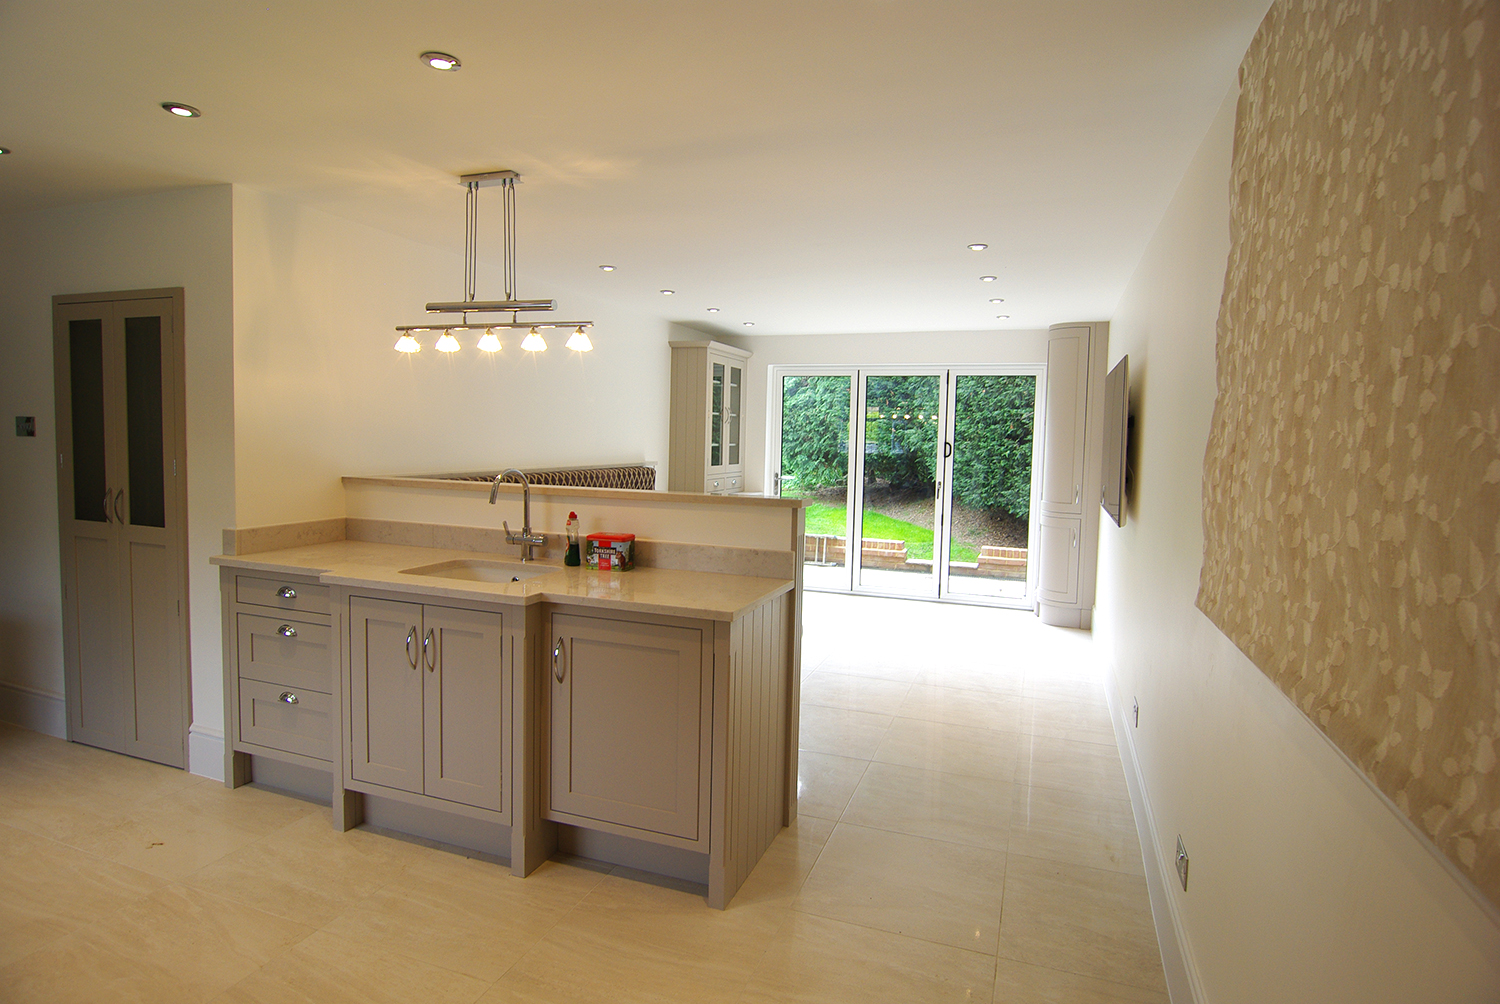 Astonishing kitchen job by Lakeside Kitchens